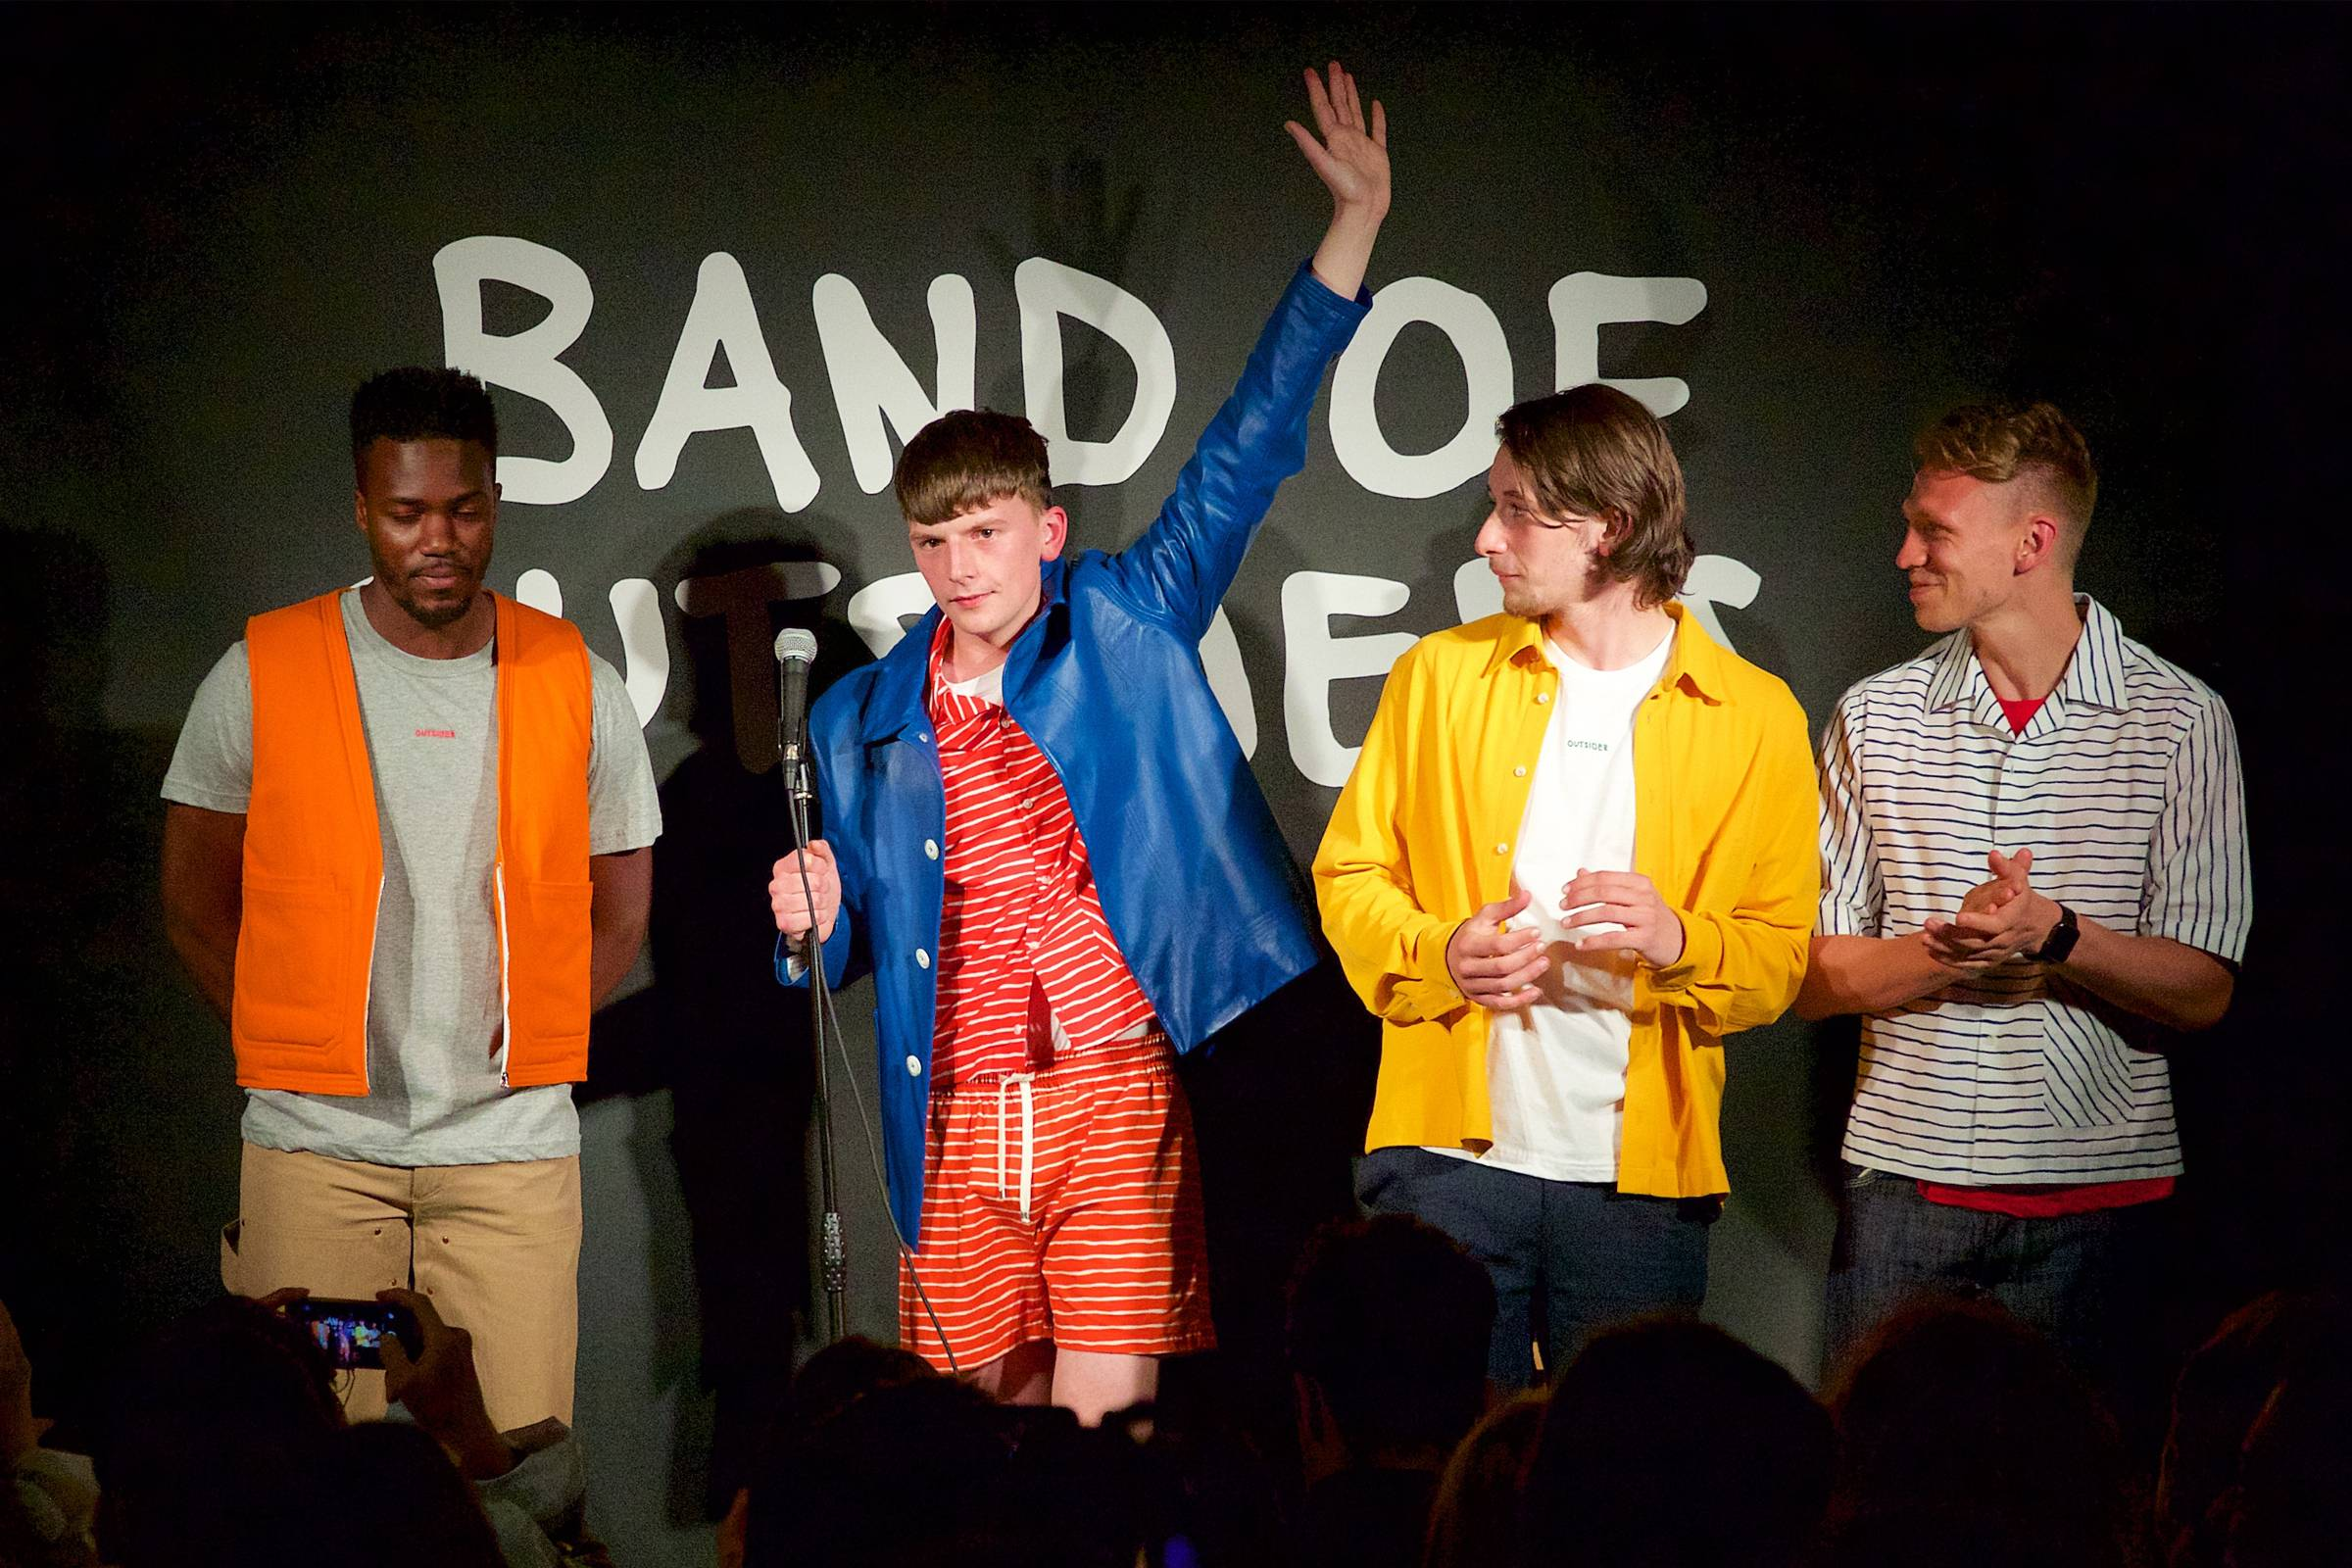 Band of Outsiders Spring/Summer 2018 collection presentation at Top Secret Comedy Club in London